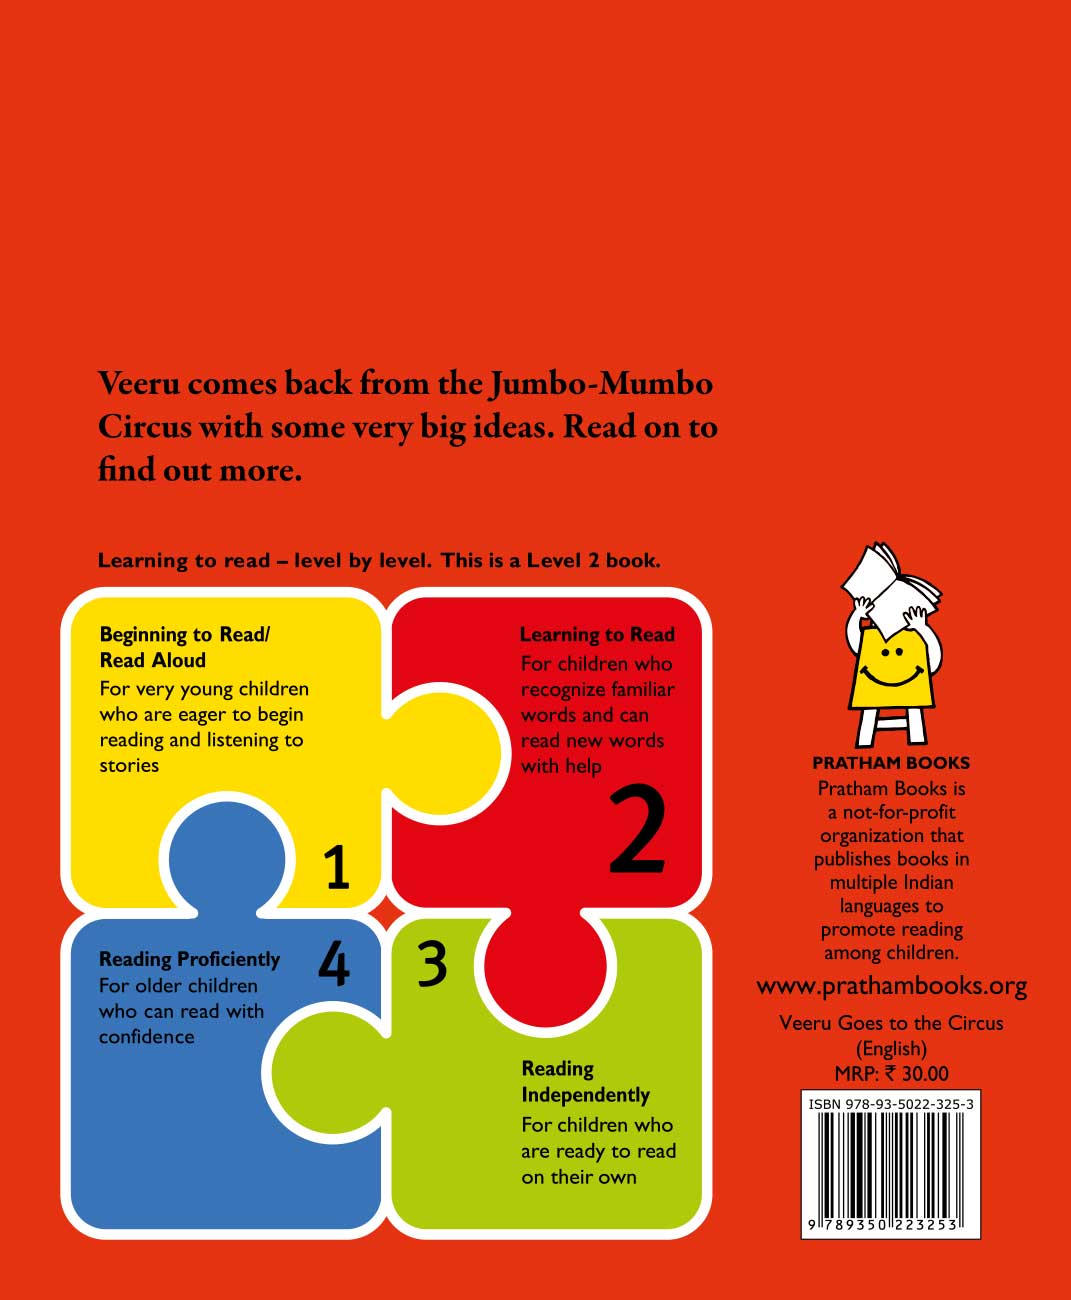 Bedtime stories 'Veeru Goes to the Circus' free picture book back cover